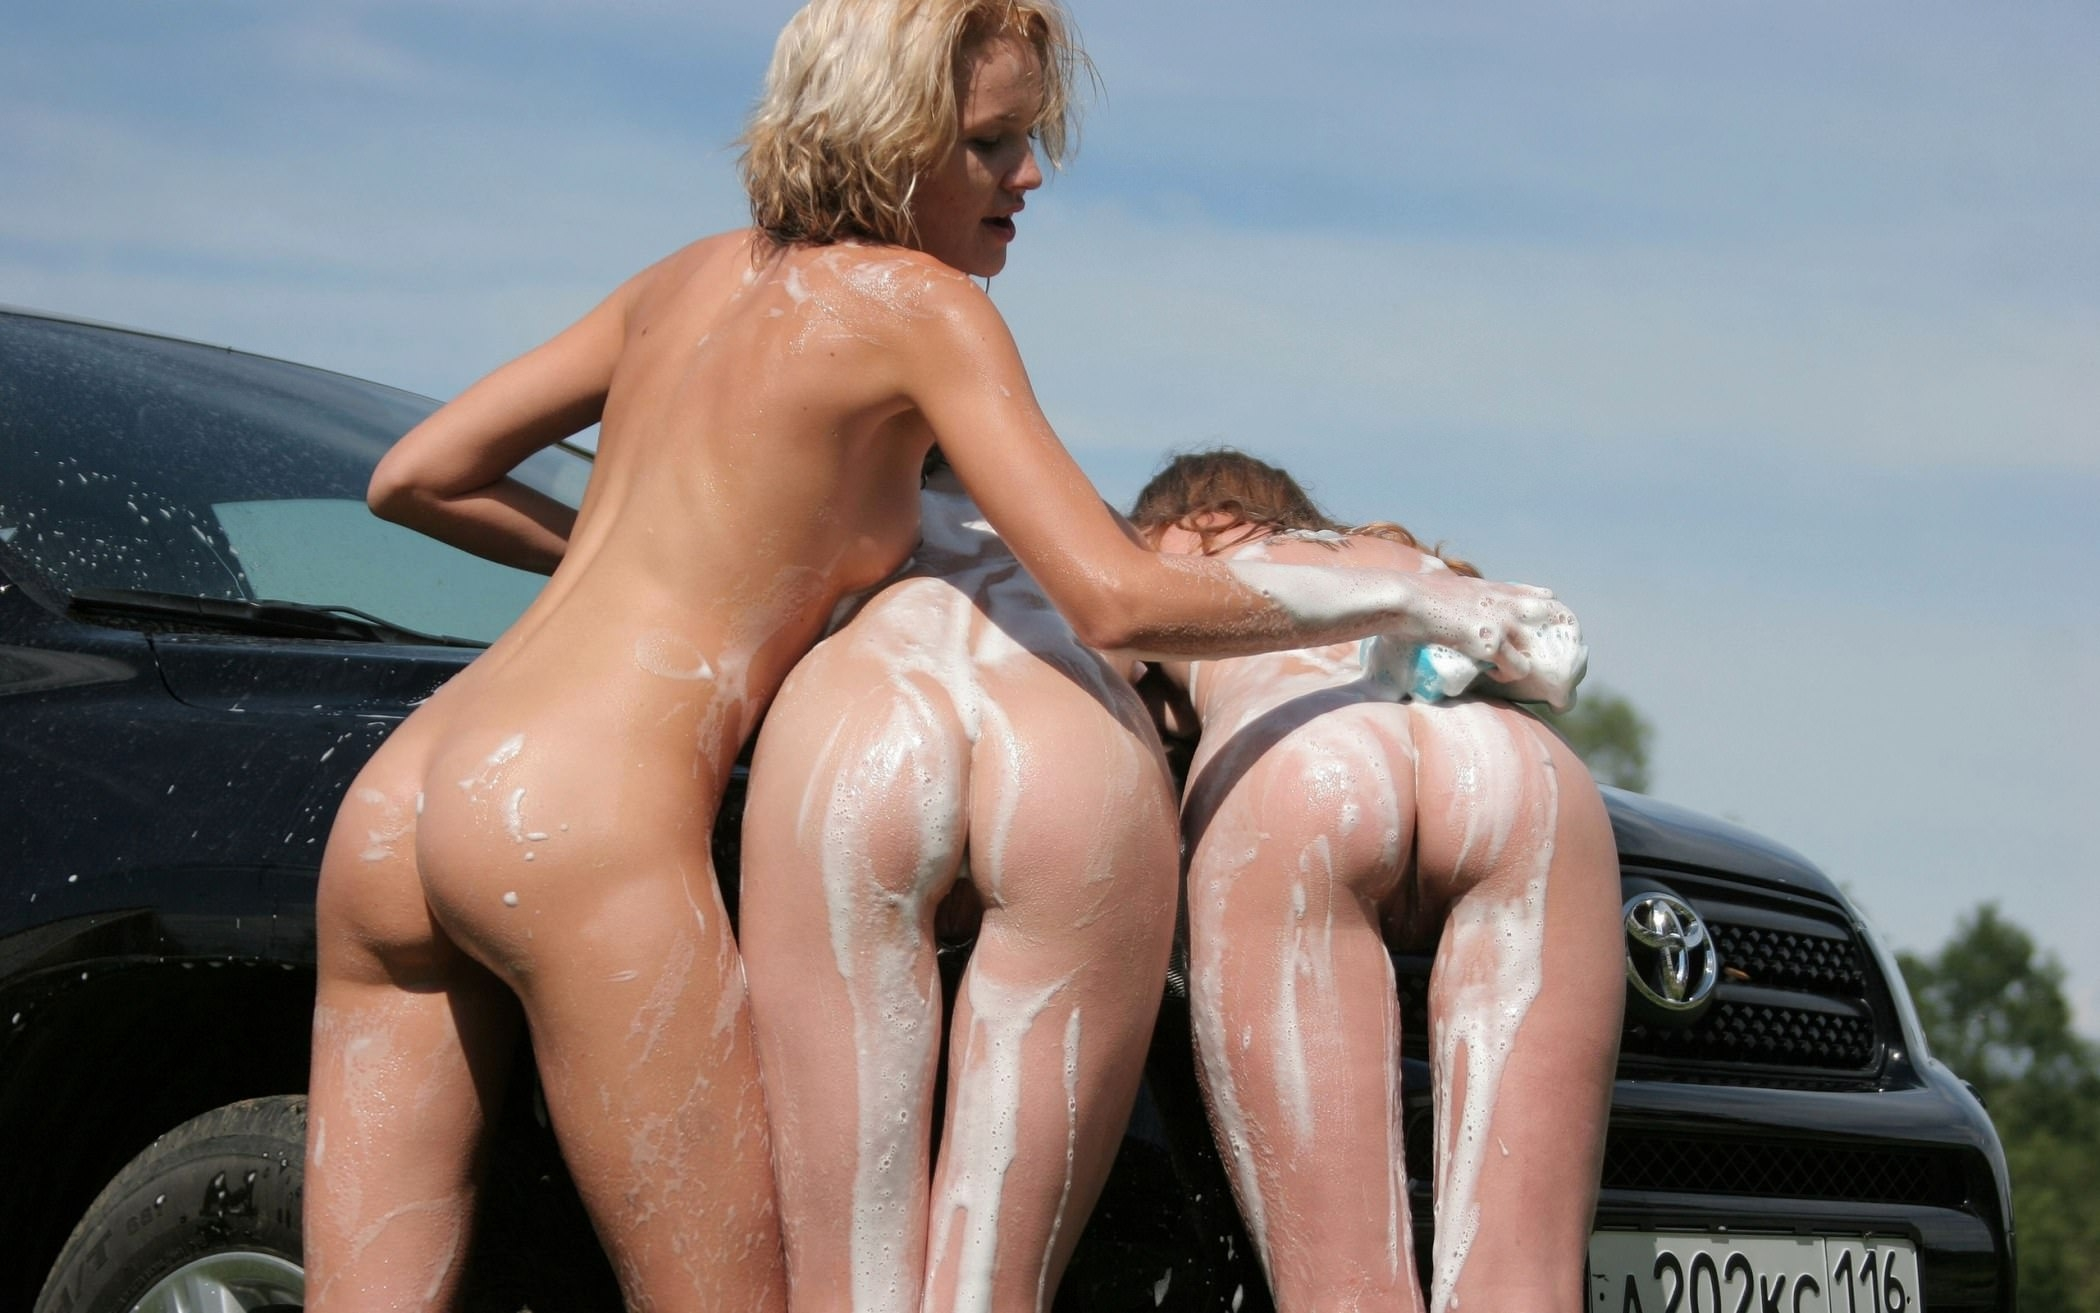 Nude Car Wash Blogs